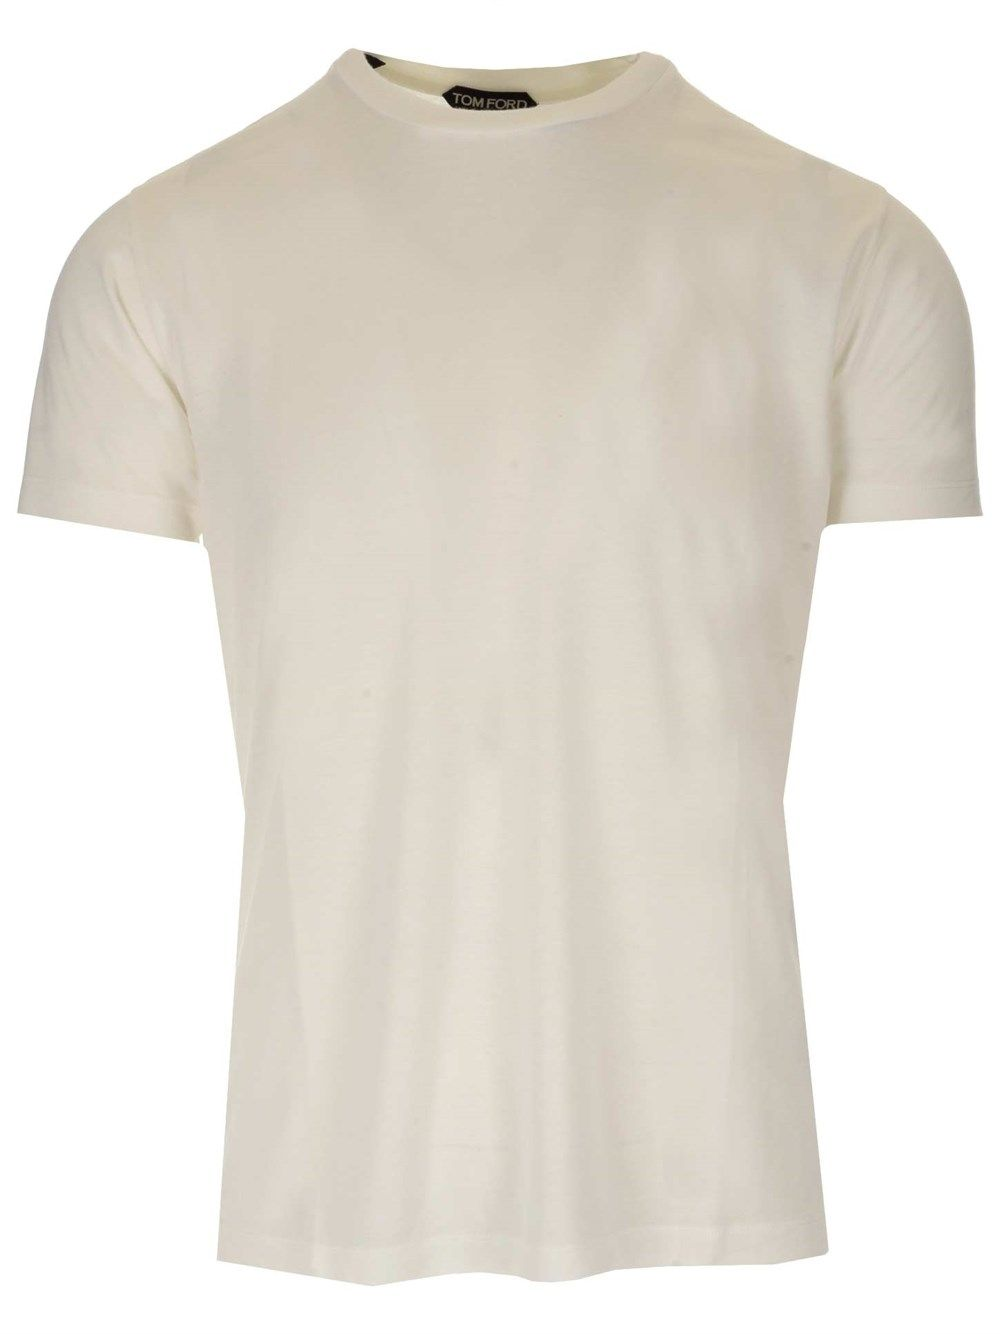 Tom Ford T-shirts TOM FORD MEN'S BW278TFJ209N01 WHITE OTHER MATERIALS T-SHIRT